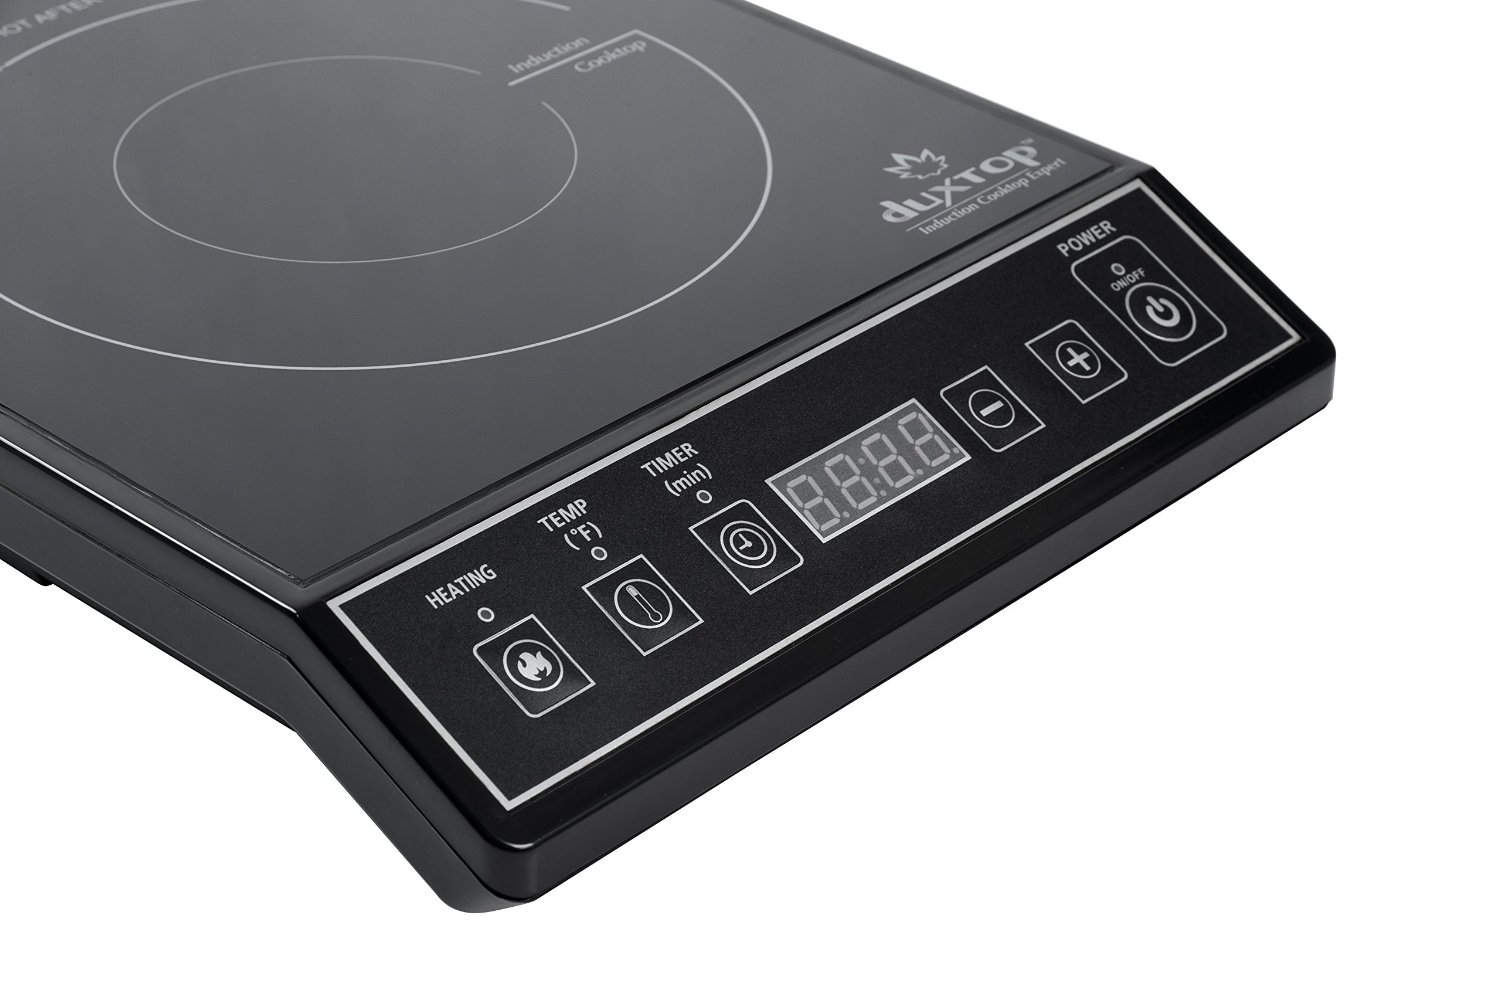 Induction Cooktop Duxtop Induction Cooktop Reviews The Best Portables Under